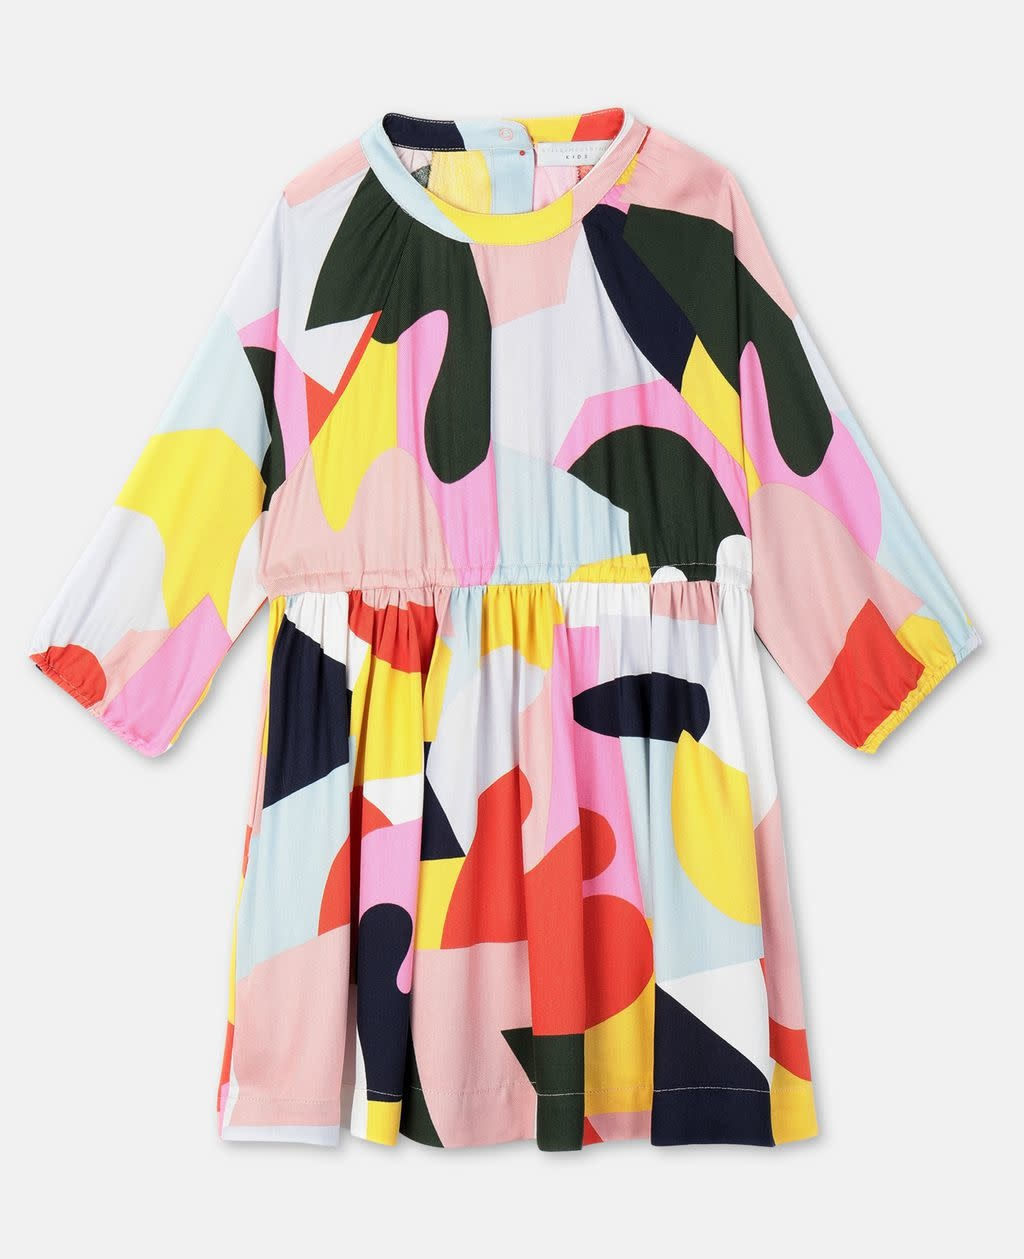 STELLA MCCARTNEY Longsleeve Color Block Dress